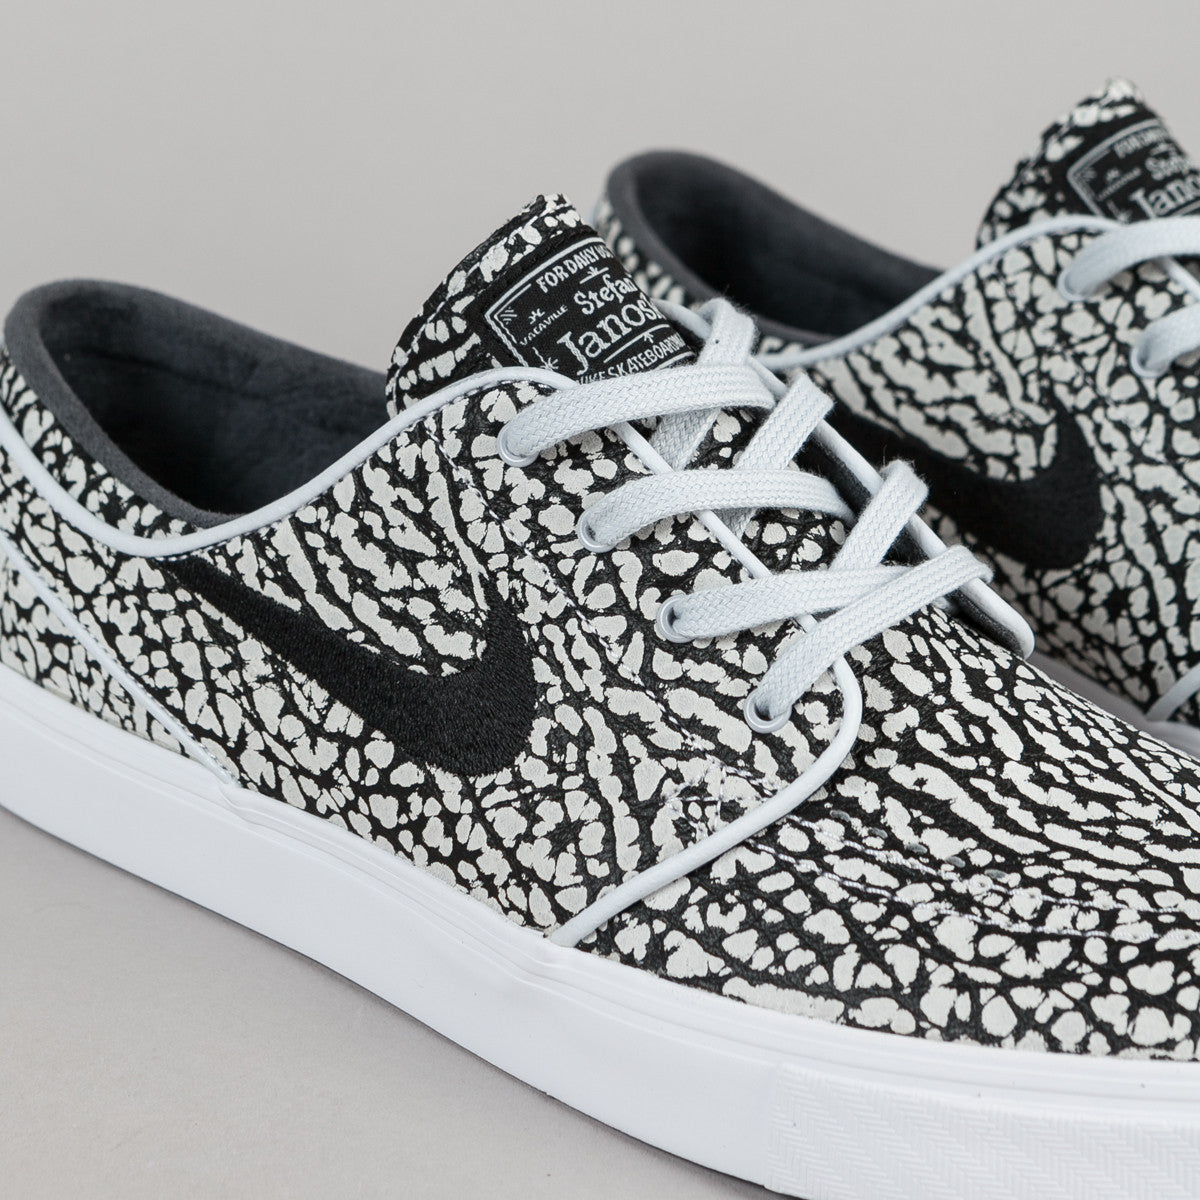 Nike SB Stefan Janoski Elite 'Road Pack' Shoes - Pure Platinum / Black - White